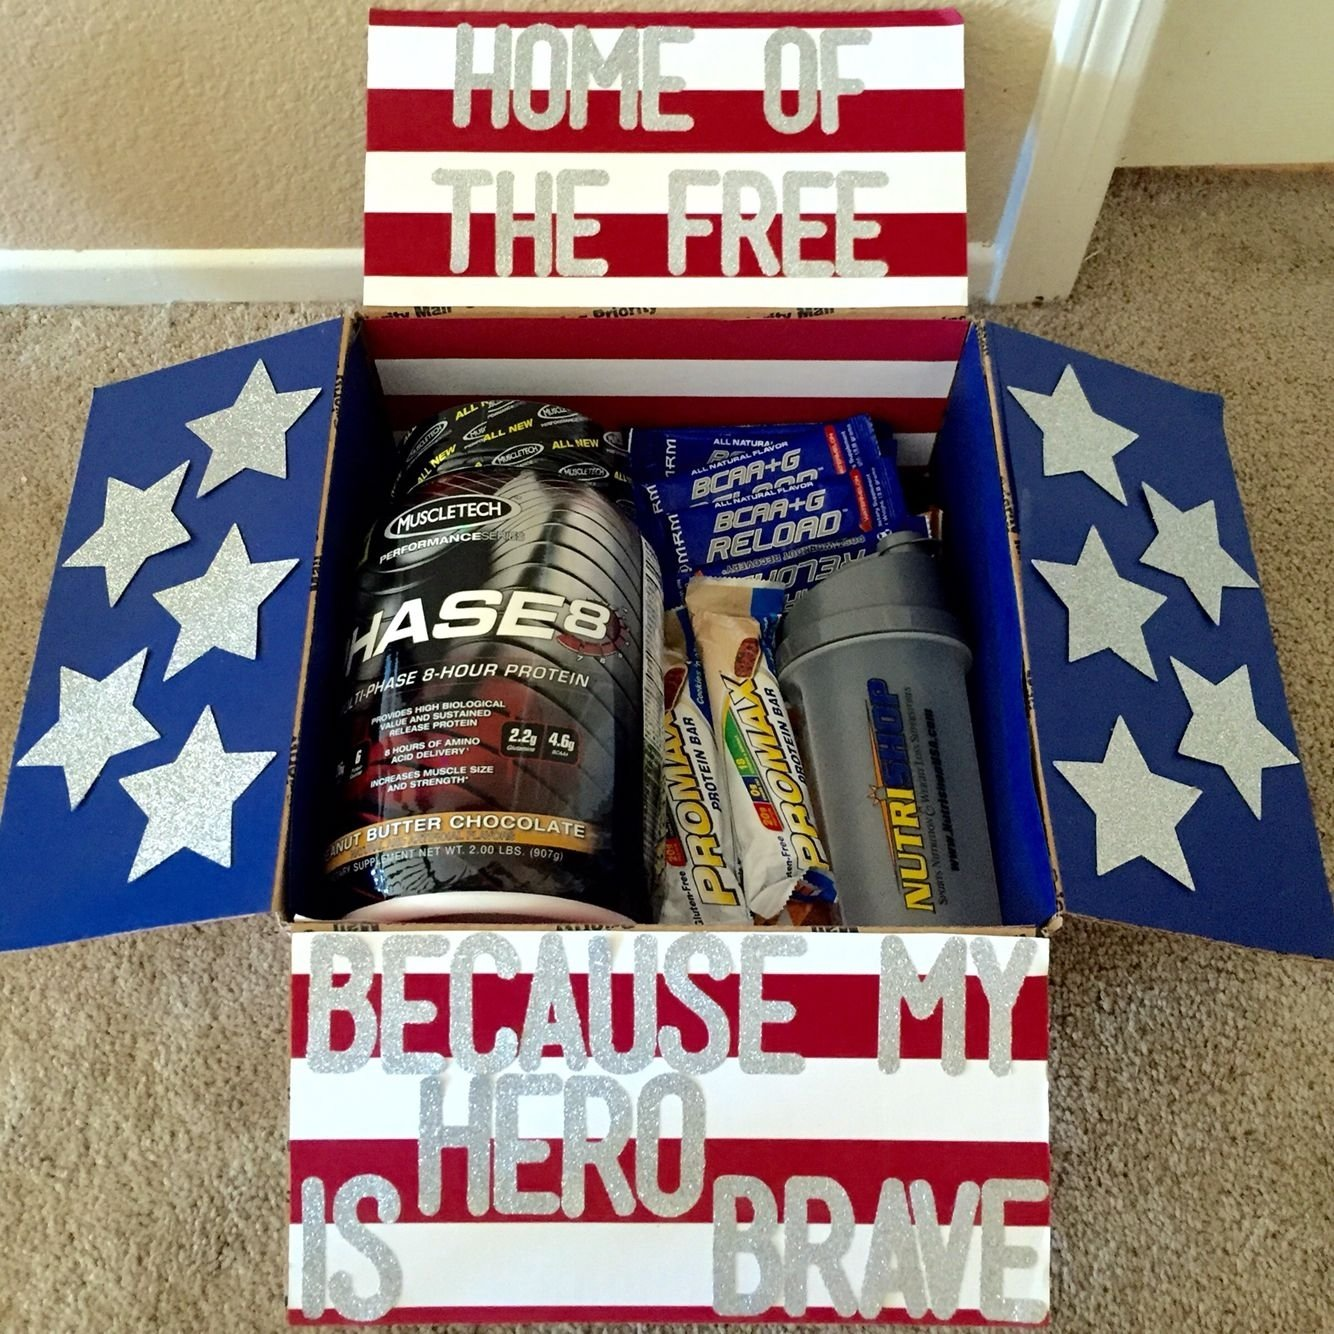 10 Most Popular Care Package Ideas For Soldiers 4th of july themed care package for babe gifts for her pinterest 1 2021